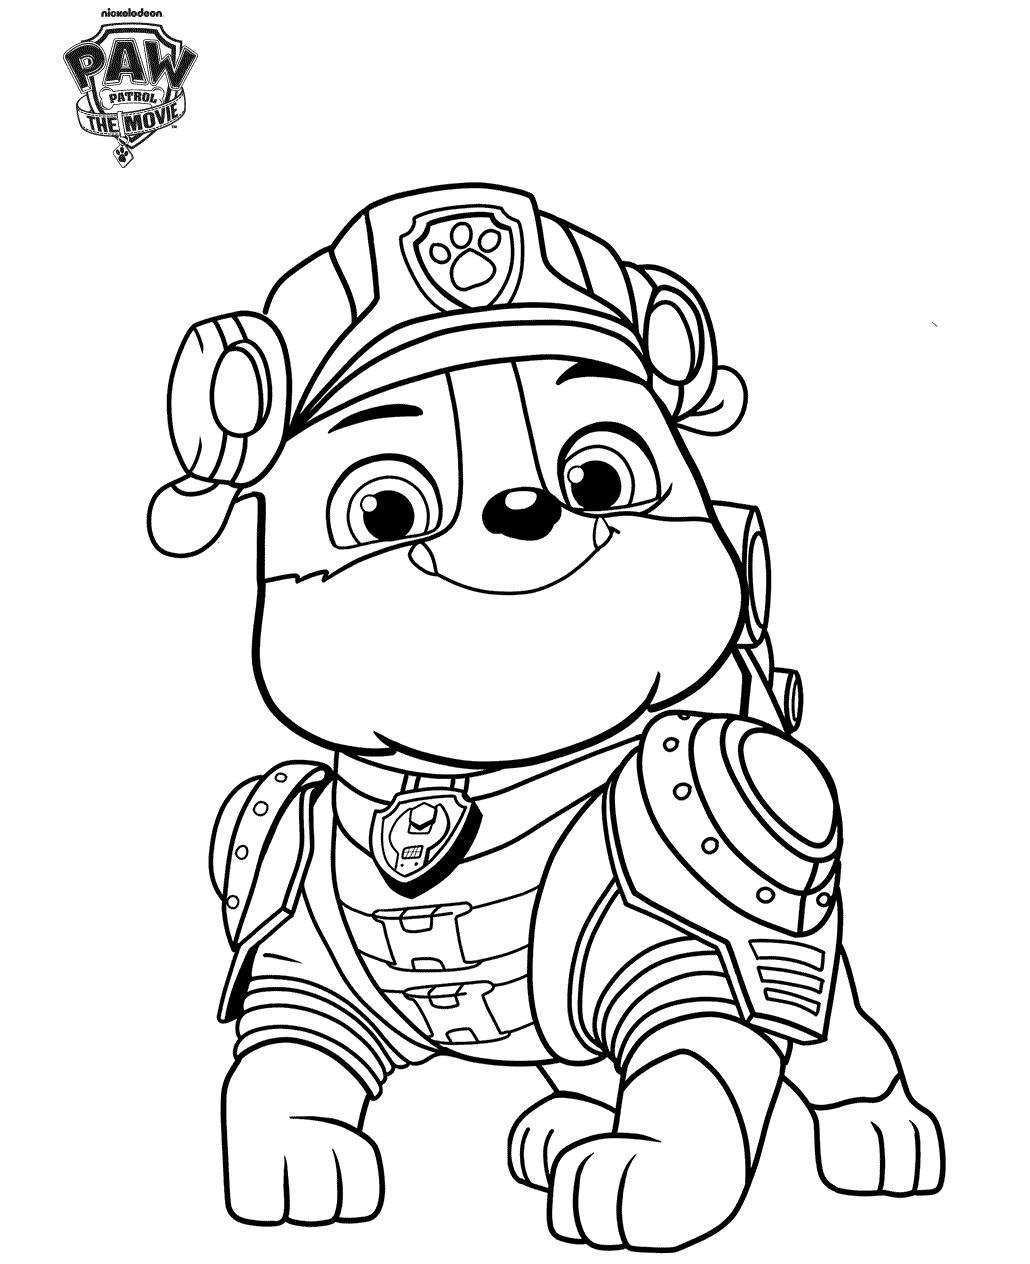 Rubble From Paw Patrol movie coloring page